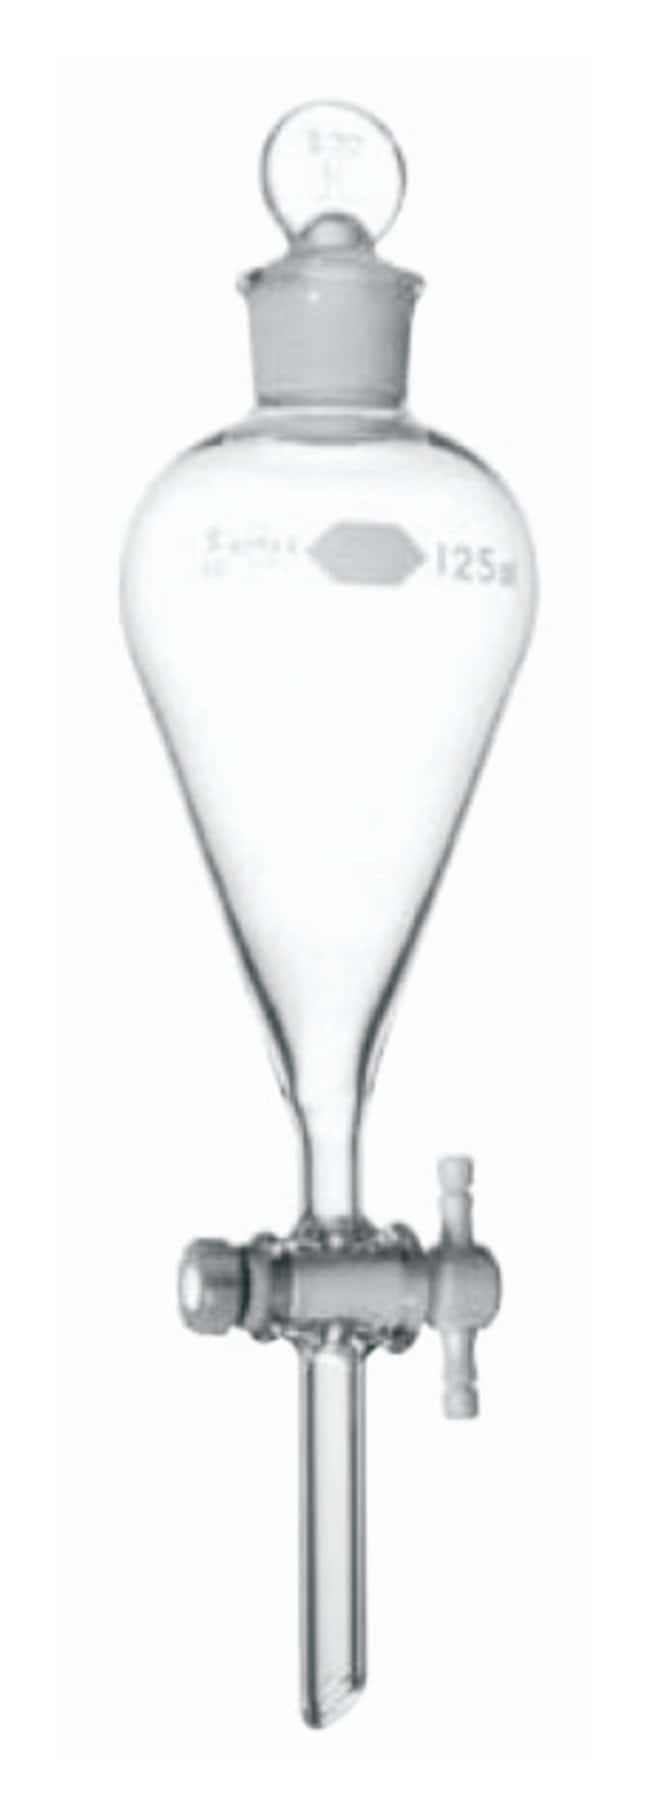 DWK Life Sciences Kimble™ Kontes™ Squibb Pear-Shaped Separatory Funnels with standard taper Stopper and Autoclavable PTFE Stockcock Plug